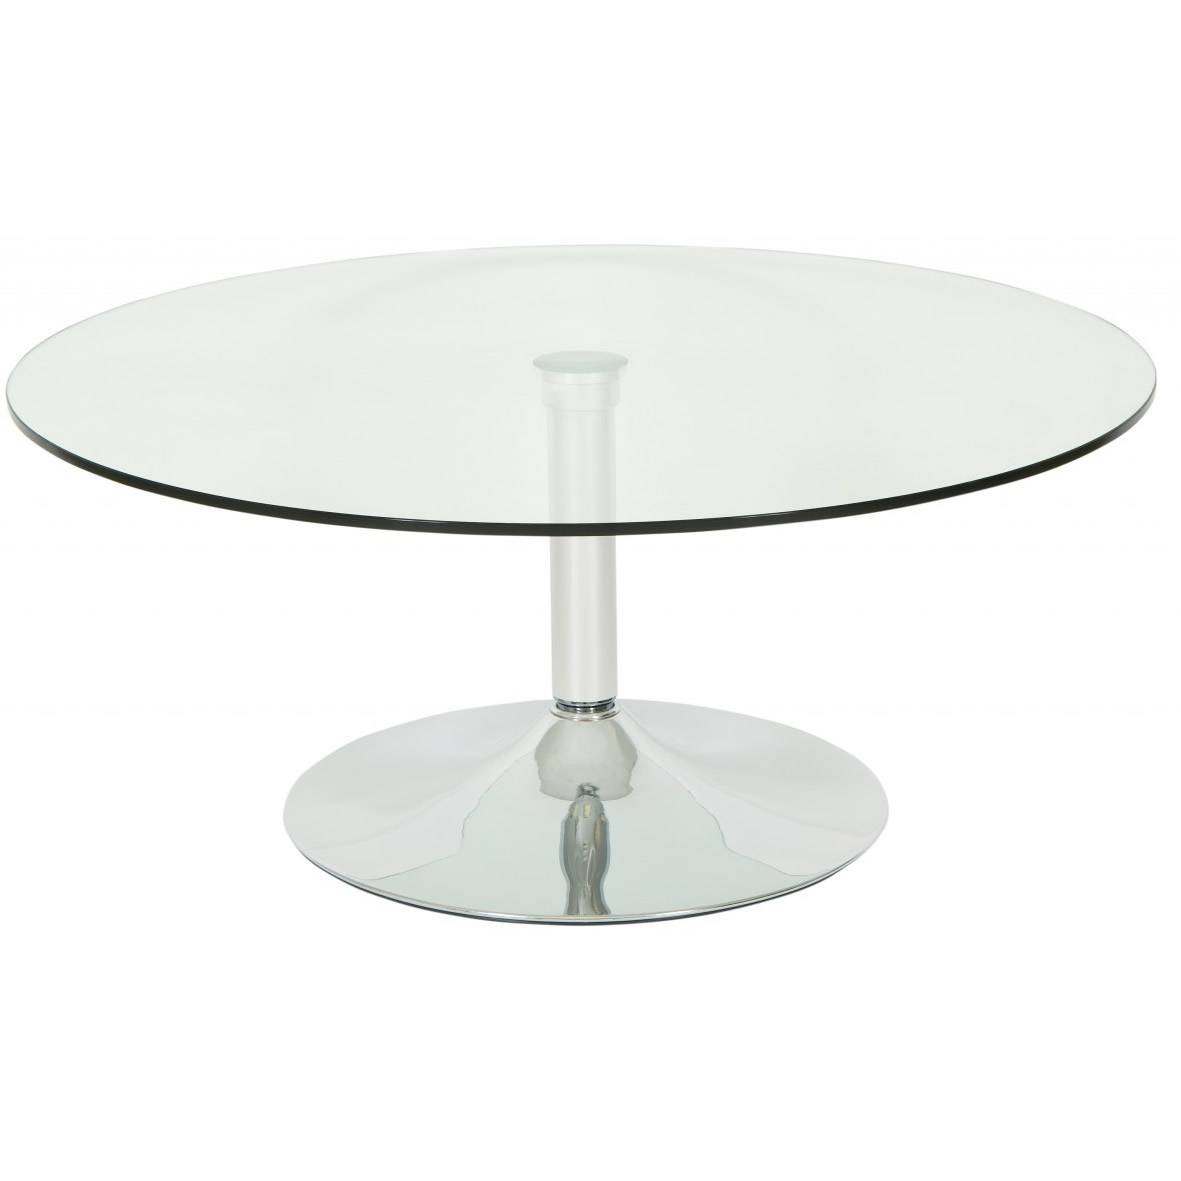 Round Glass Coffee Table Wood : Round Glass Coffee Table – Home regarding Round Glass Coffee Tables (Image 18 of 30)